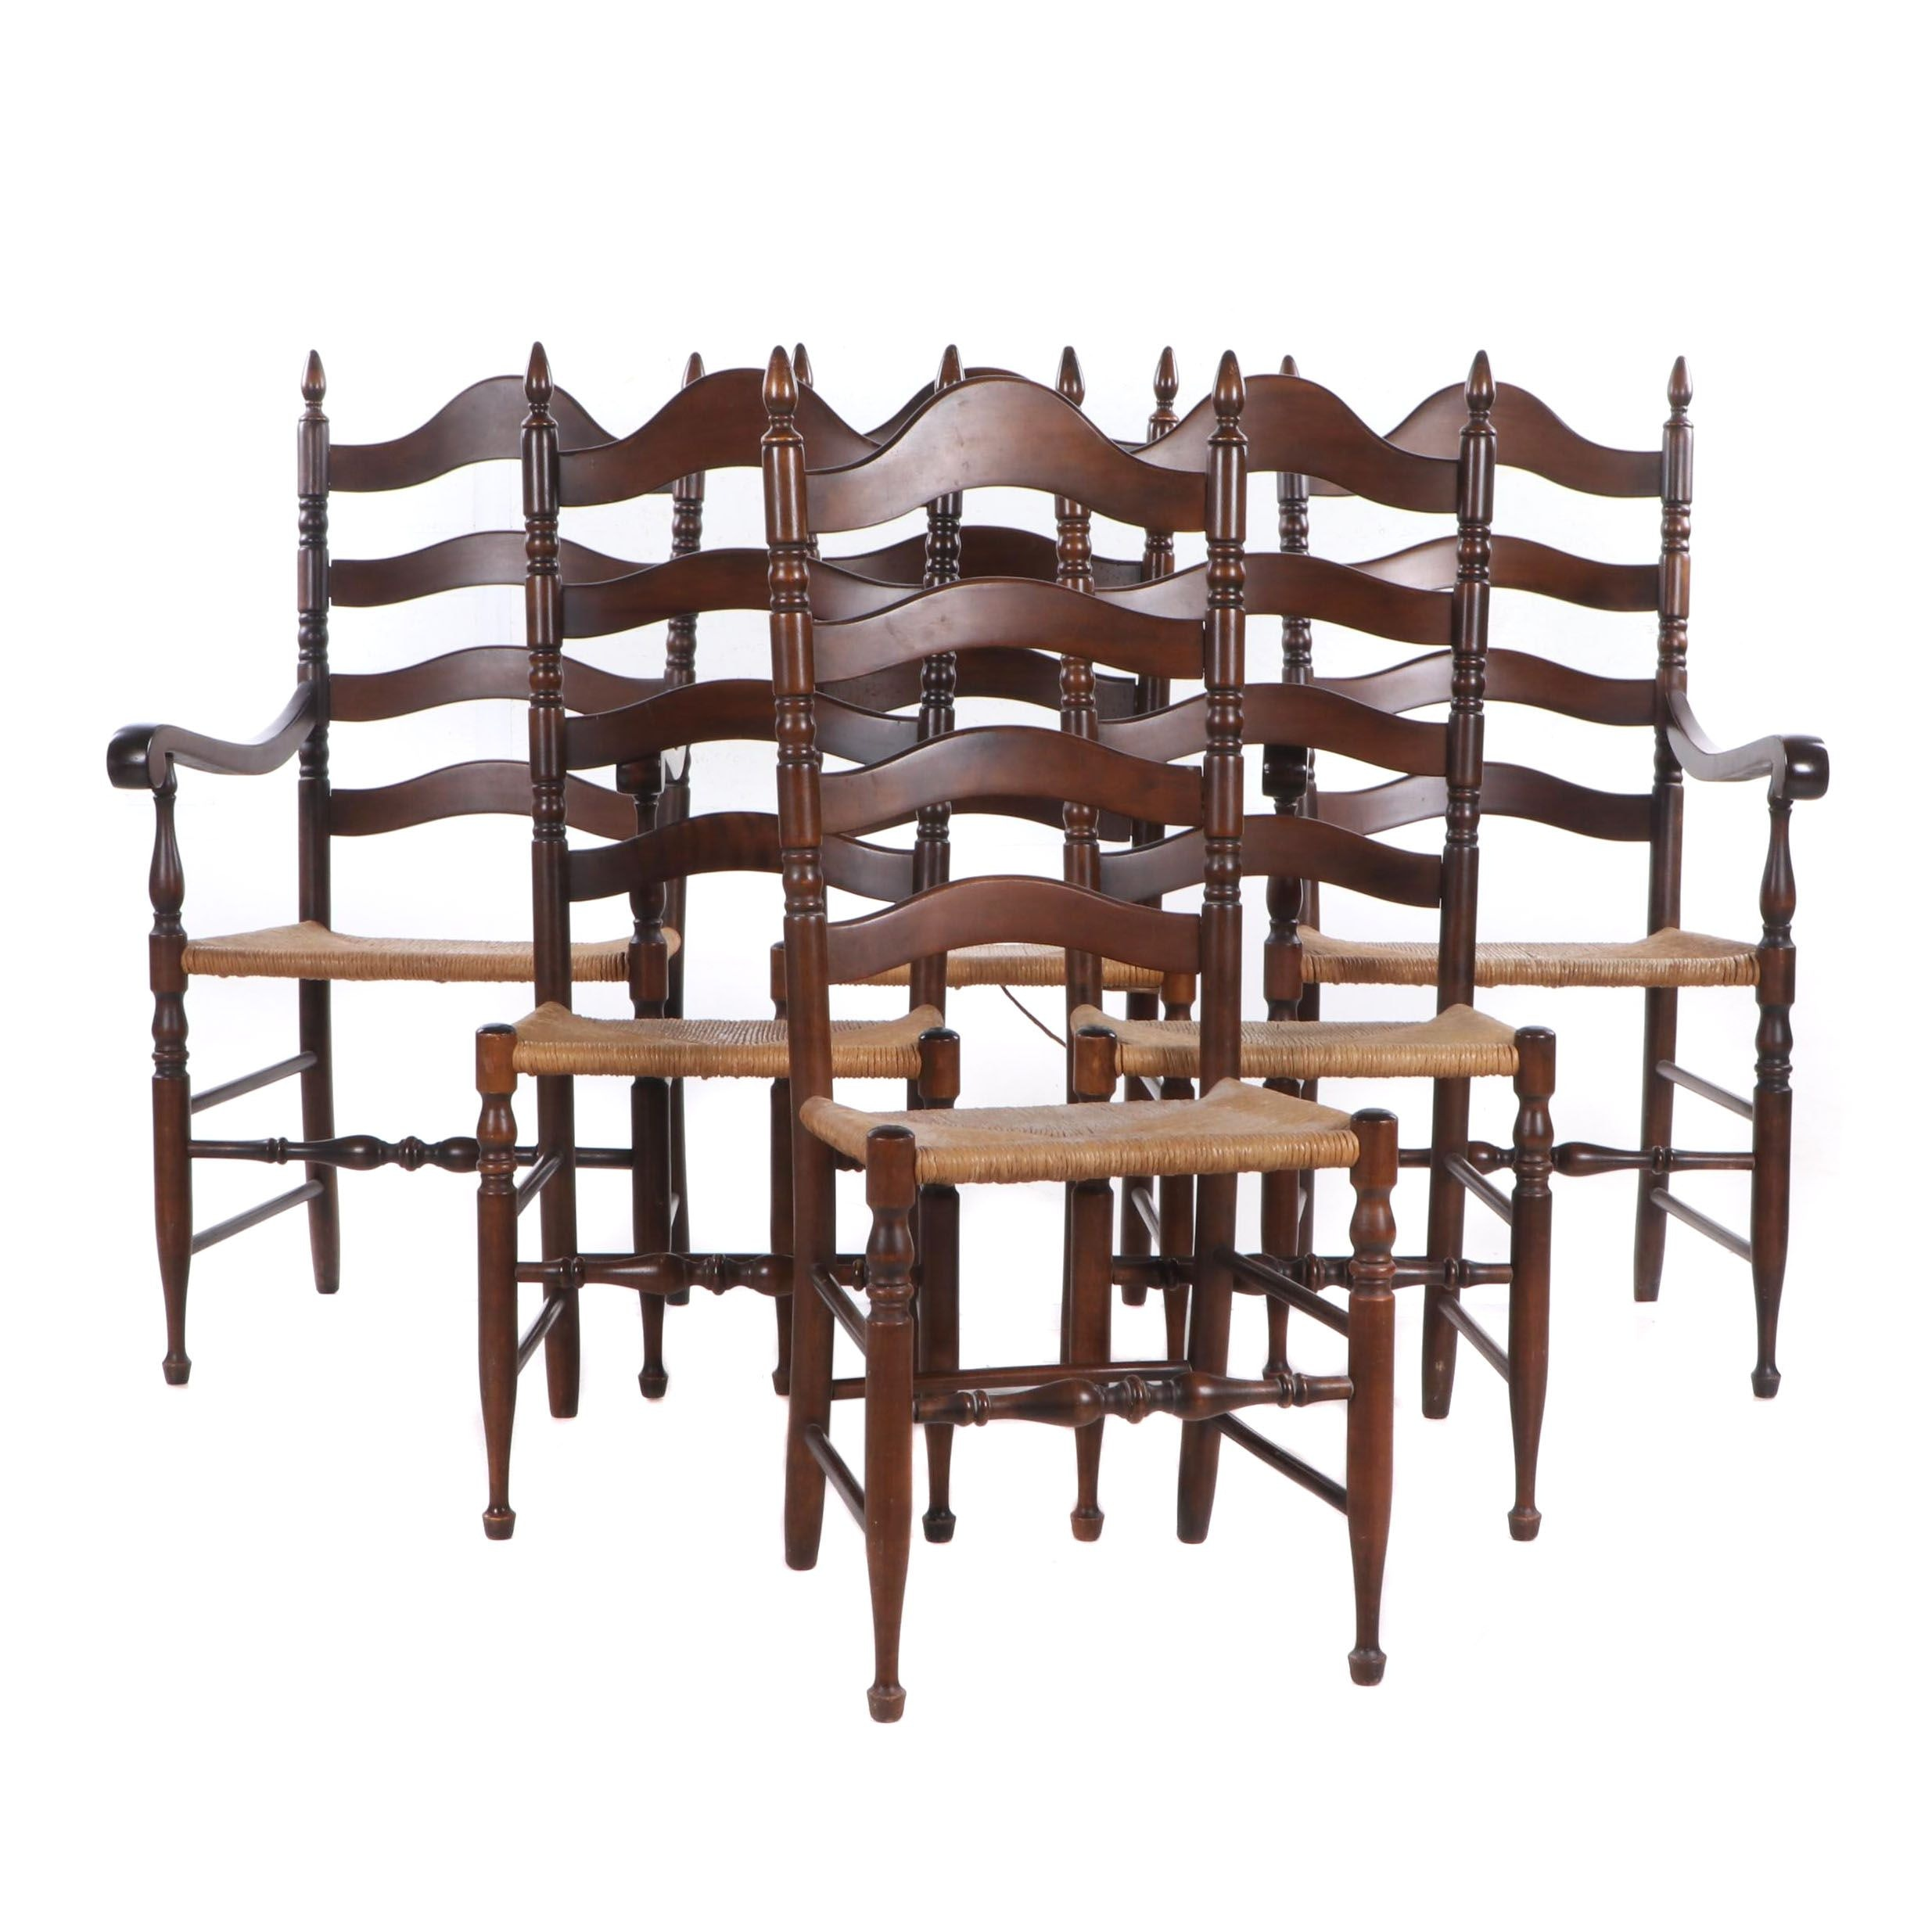 Mid-20th Century Turned Maple Rush Seat Ladder Back Dining Chairs